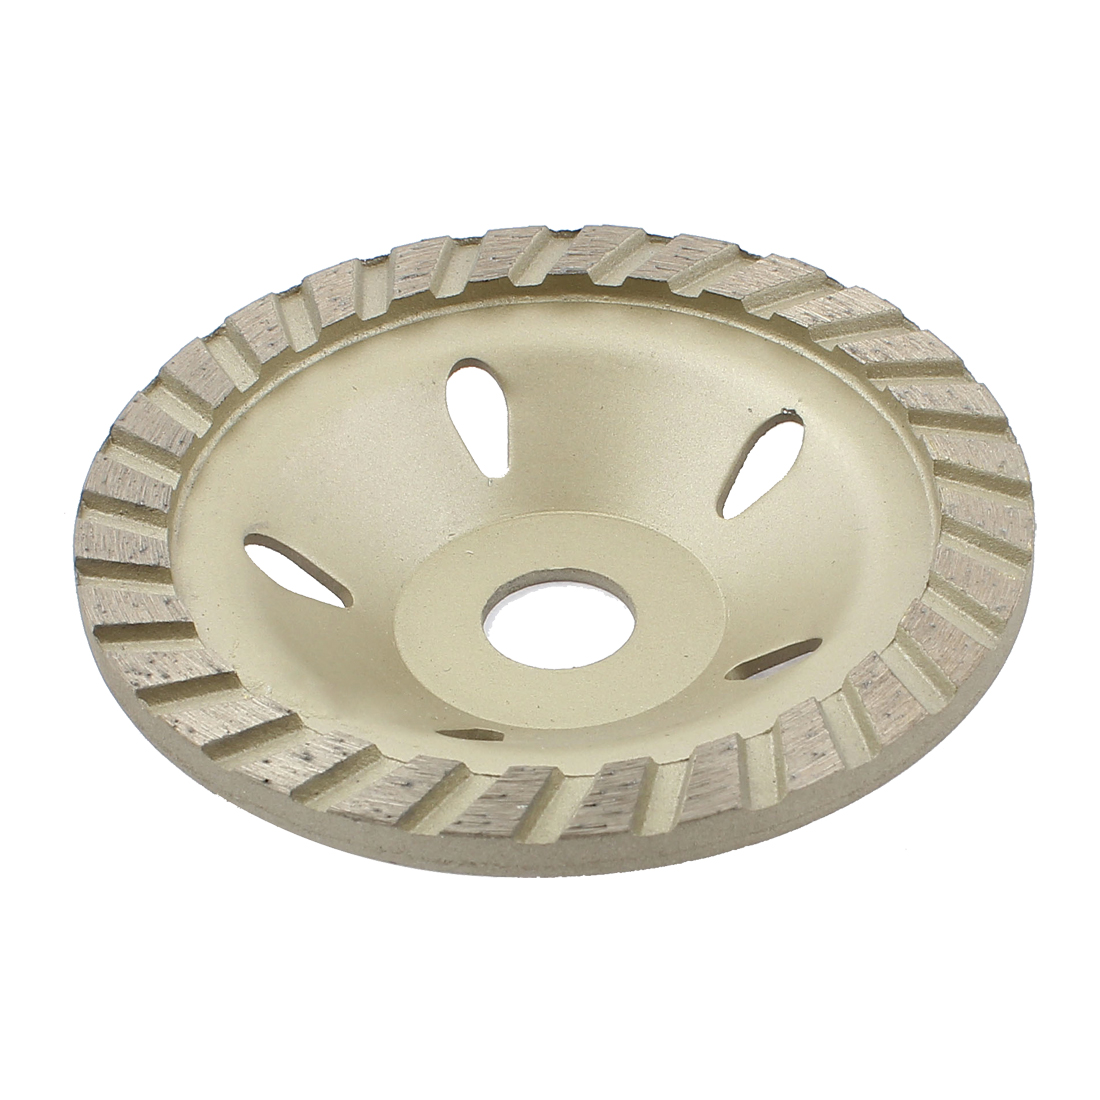 Glass Marble Stone 100mm Diameter 28 Teeth Grinding Cutting Disc Wheel